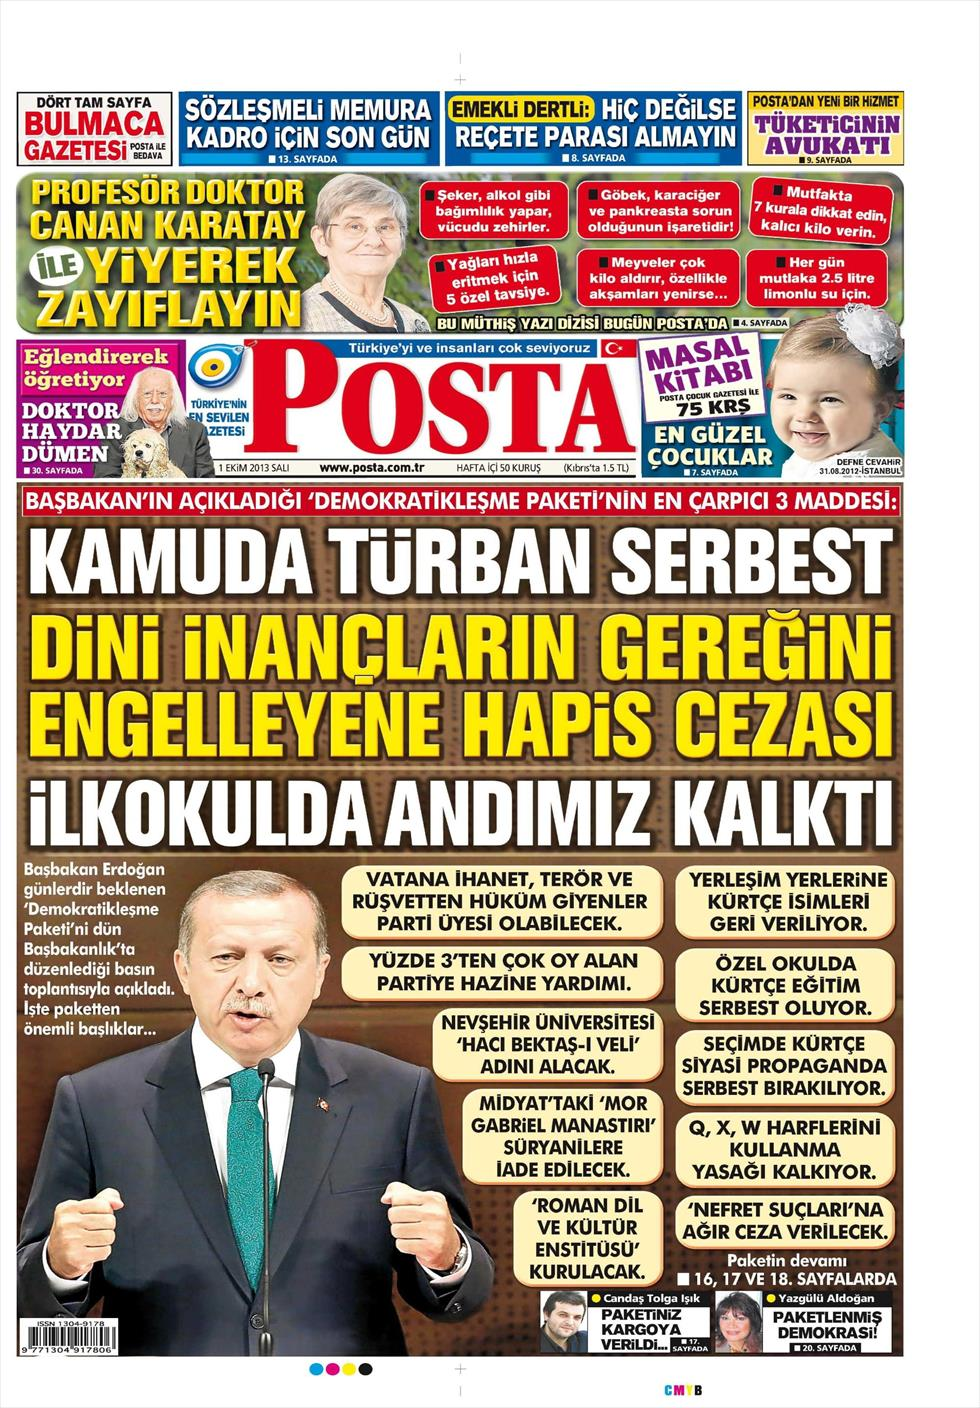 The democratization package announced by Erdogan yesterday dominates the front pages of the Turkish newspapers.